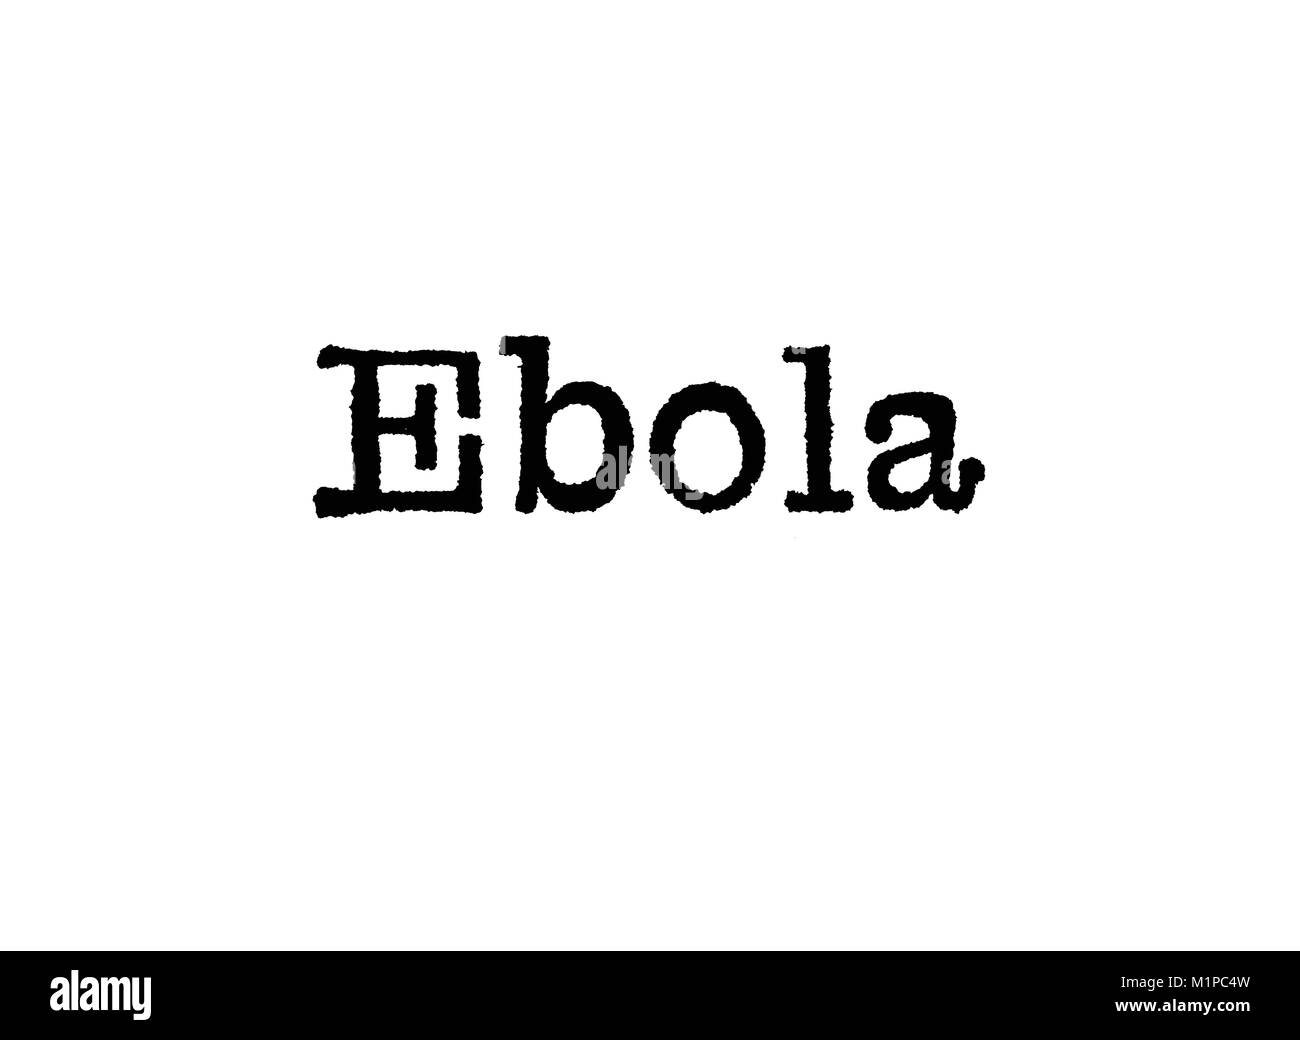 The word Ebola from a typewriter on a white background - Stock Image